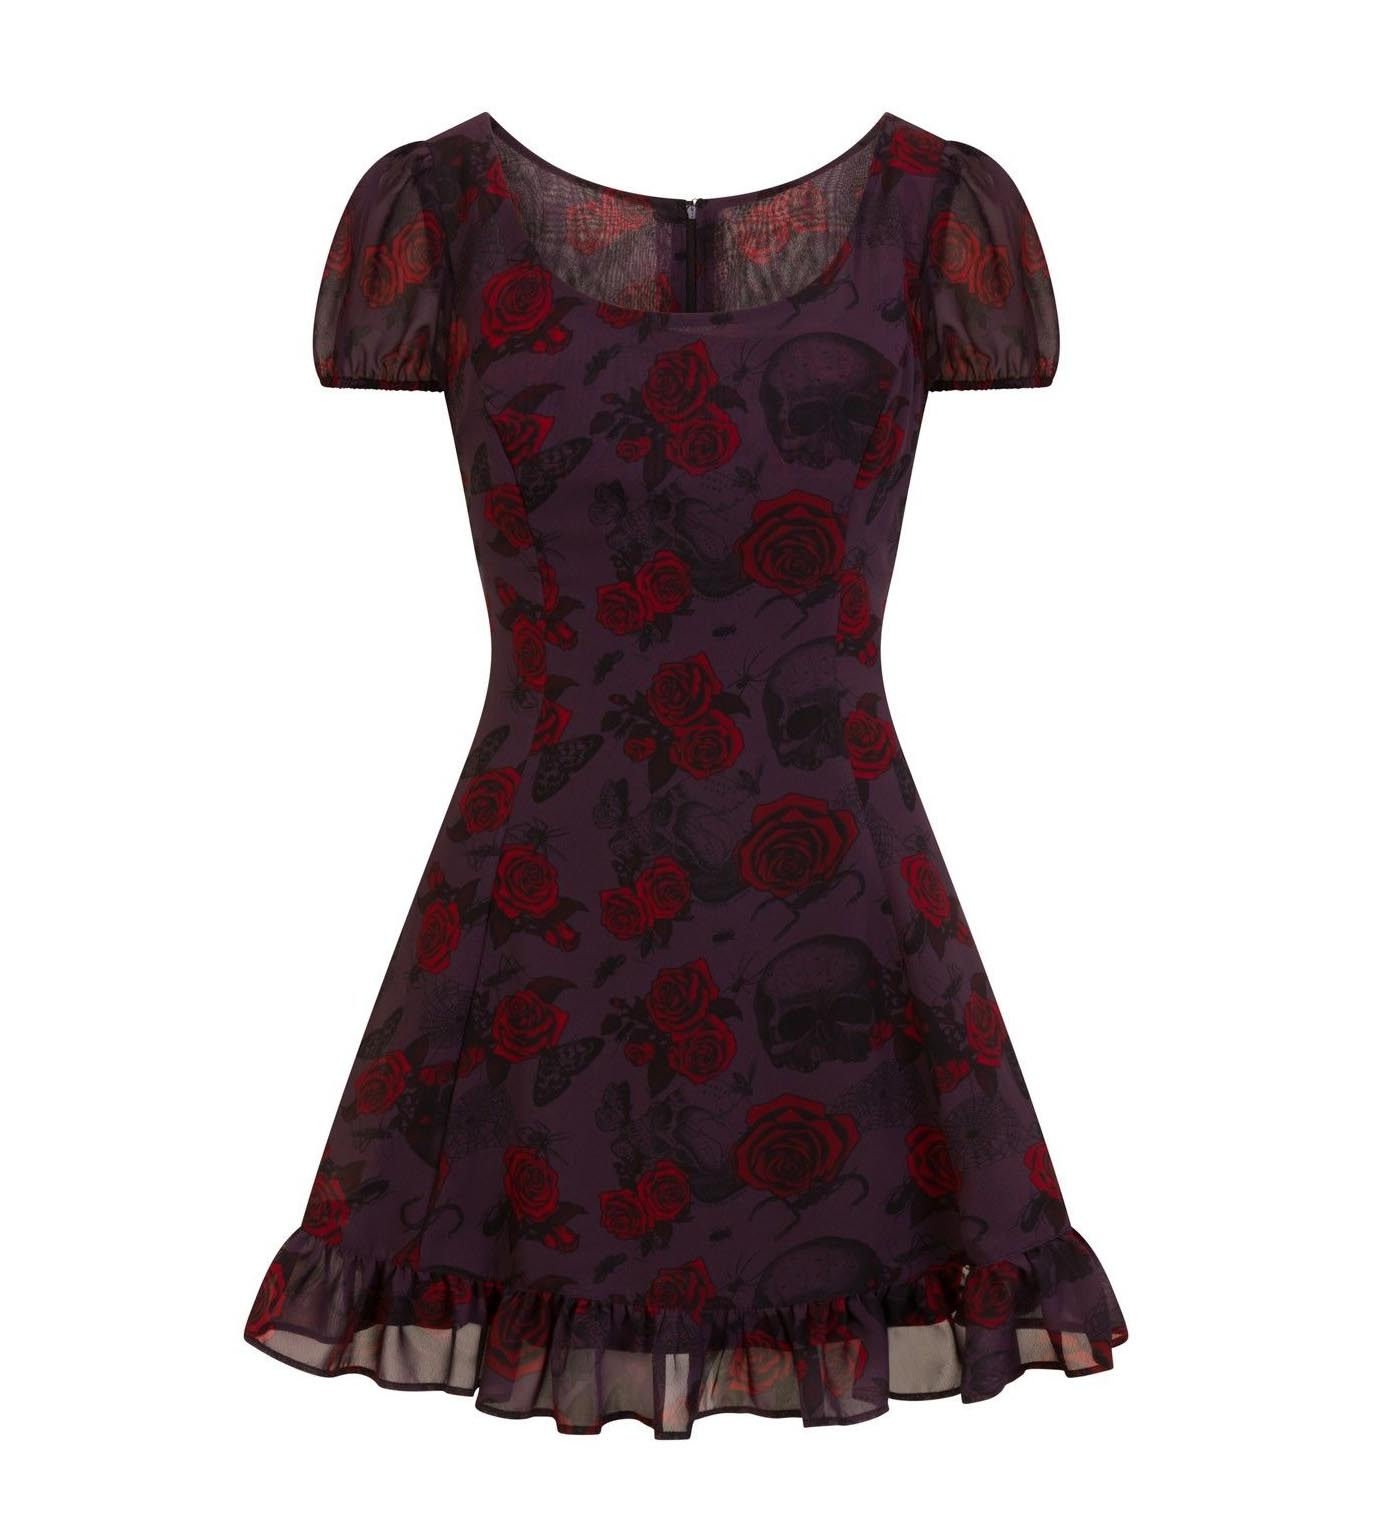 Hell-Bunny-Goth-Floaty-Mini-Dress-BUGS-amp-ROSES-Skulls-Butterfly-Purple-All-Sizes thumbnail 23